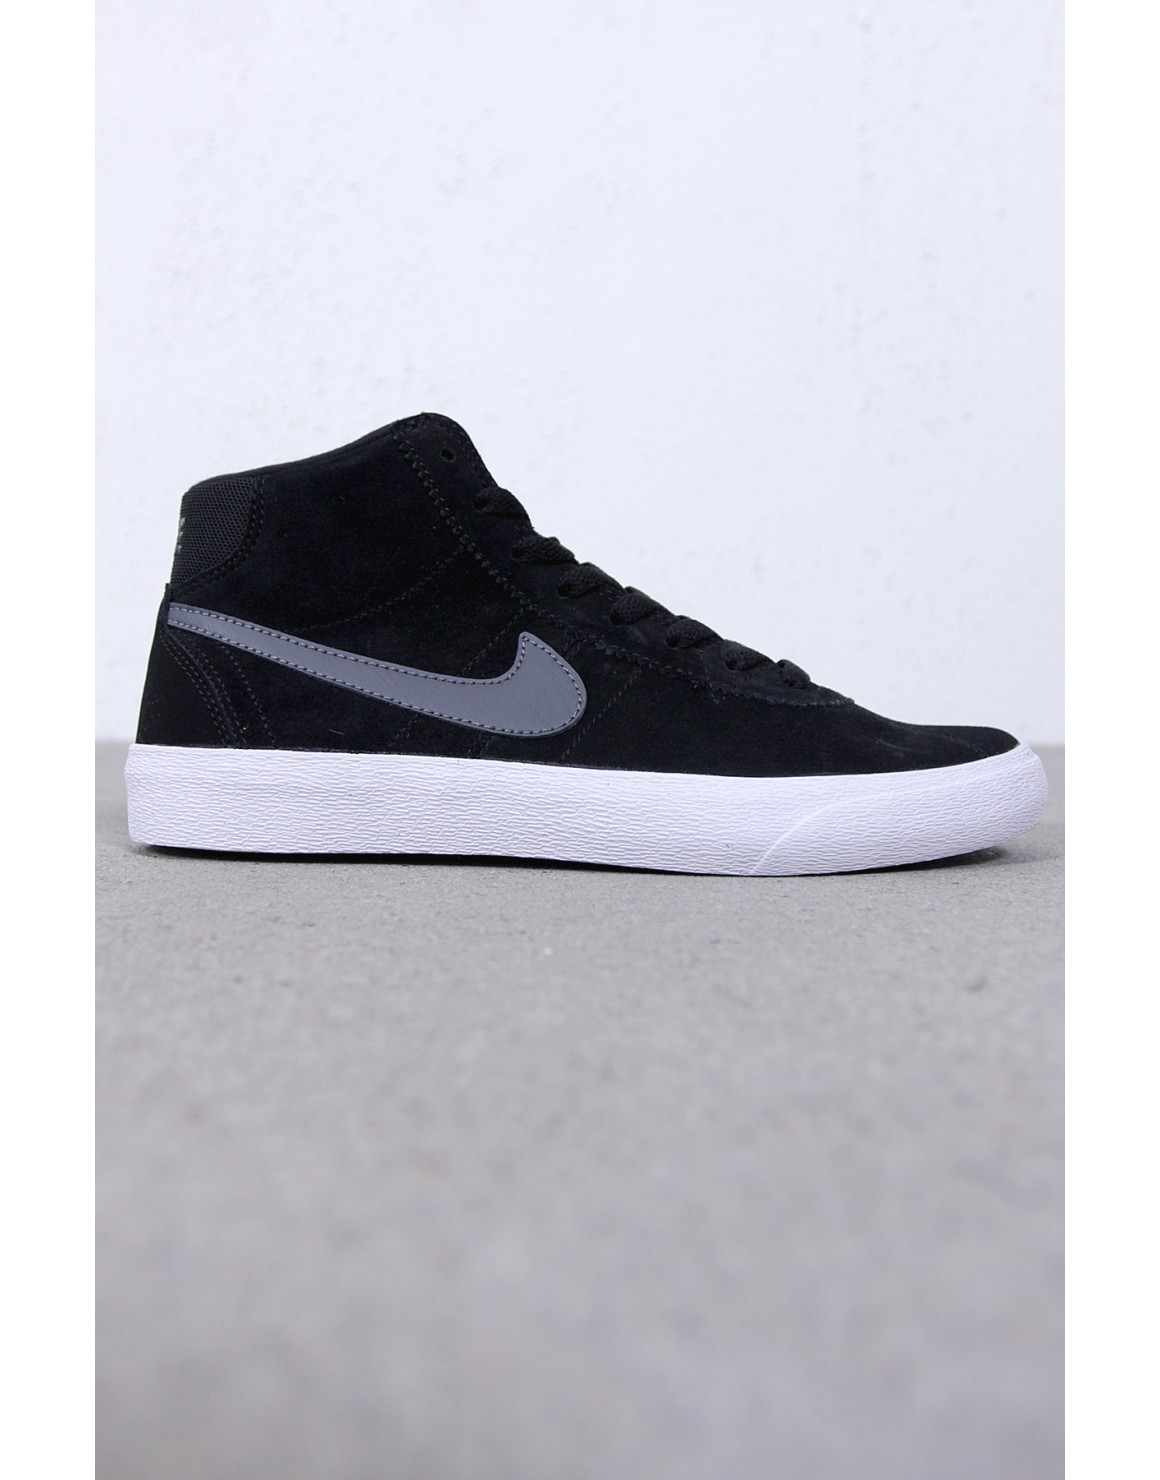 Nike SB Bruin Hi Womens Skate Shoes BlackDark Grey from